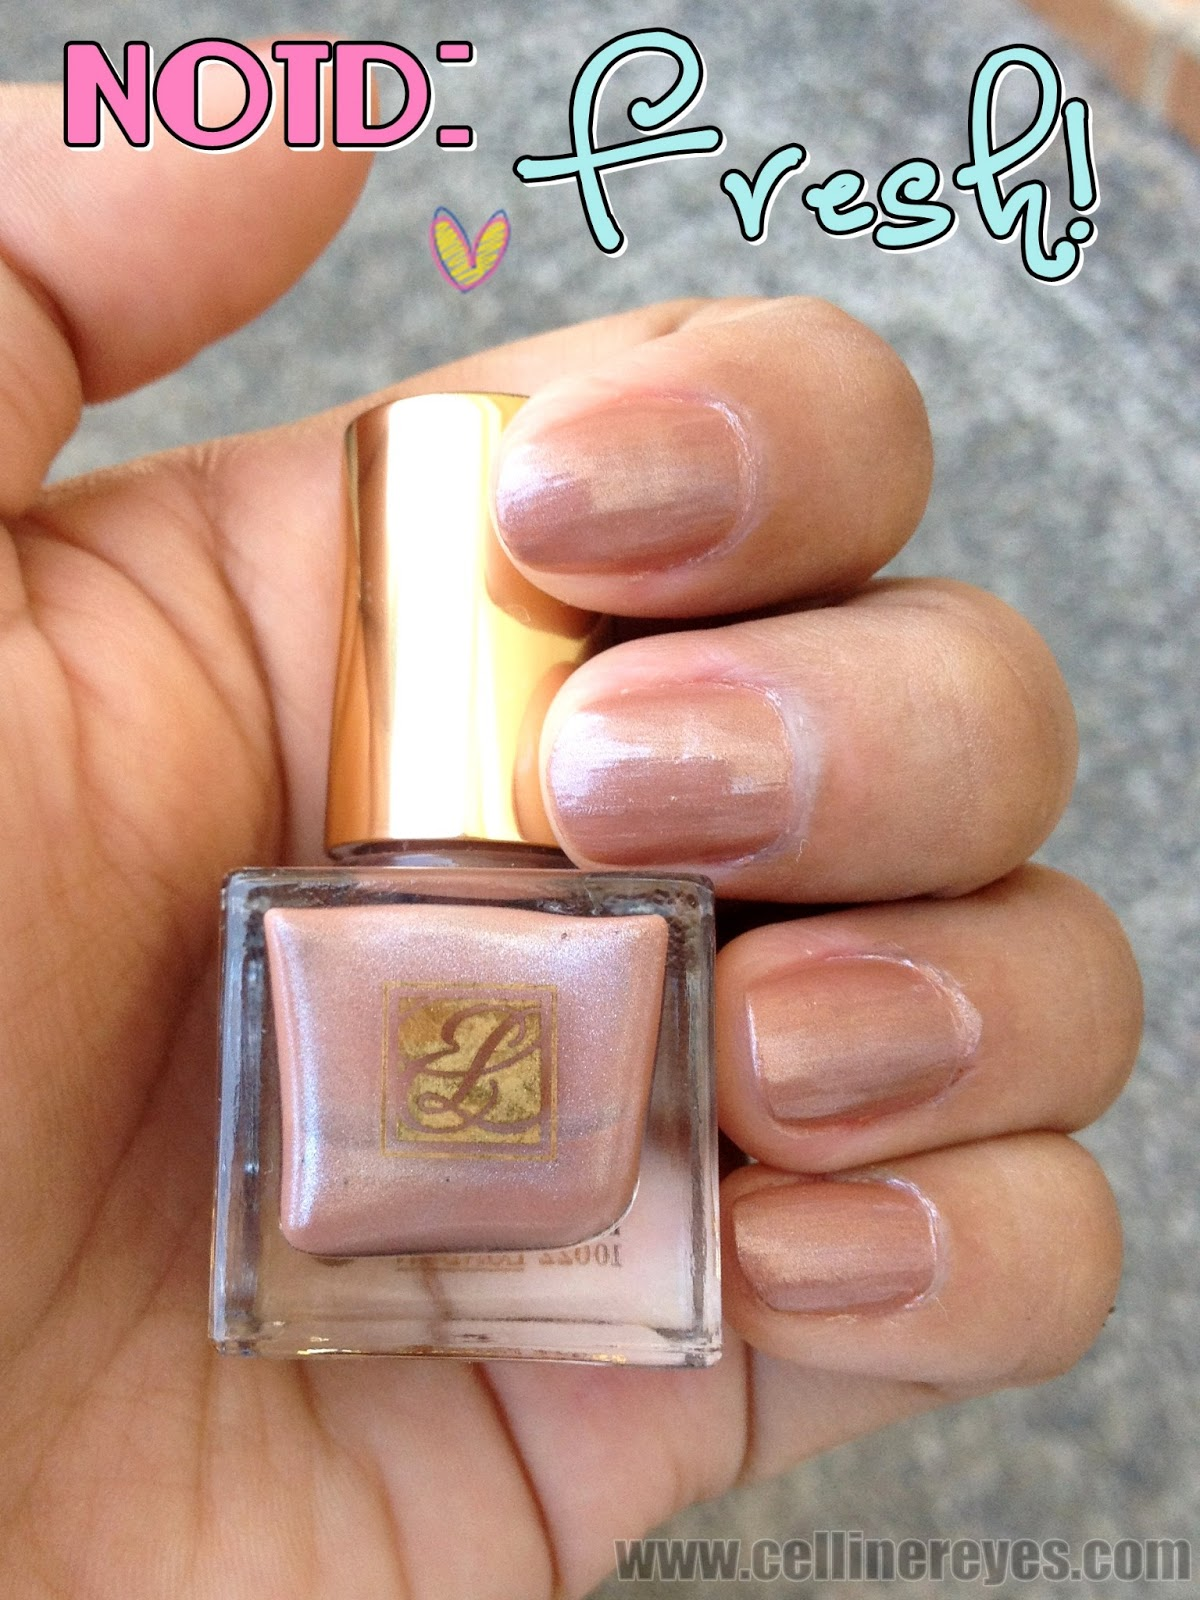 NOTD: Fresh! – Product Arena by Celline Reyes